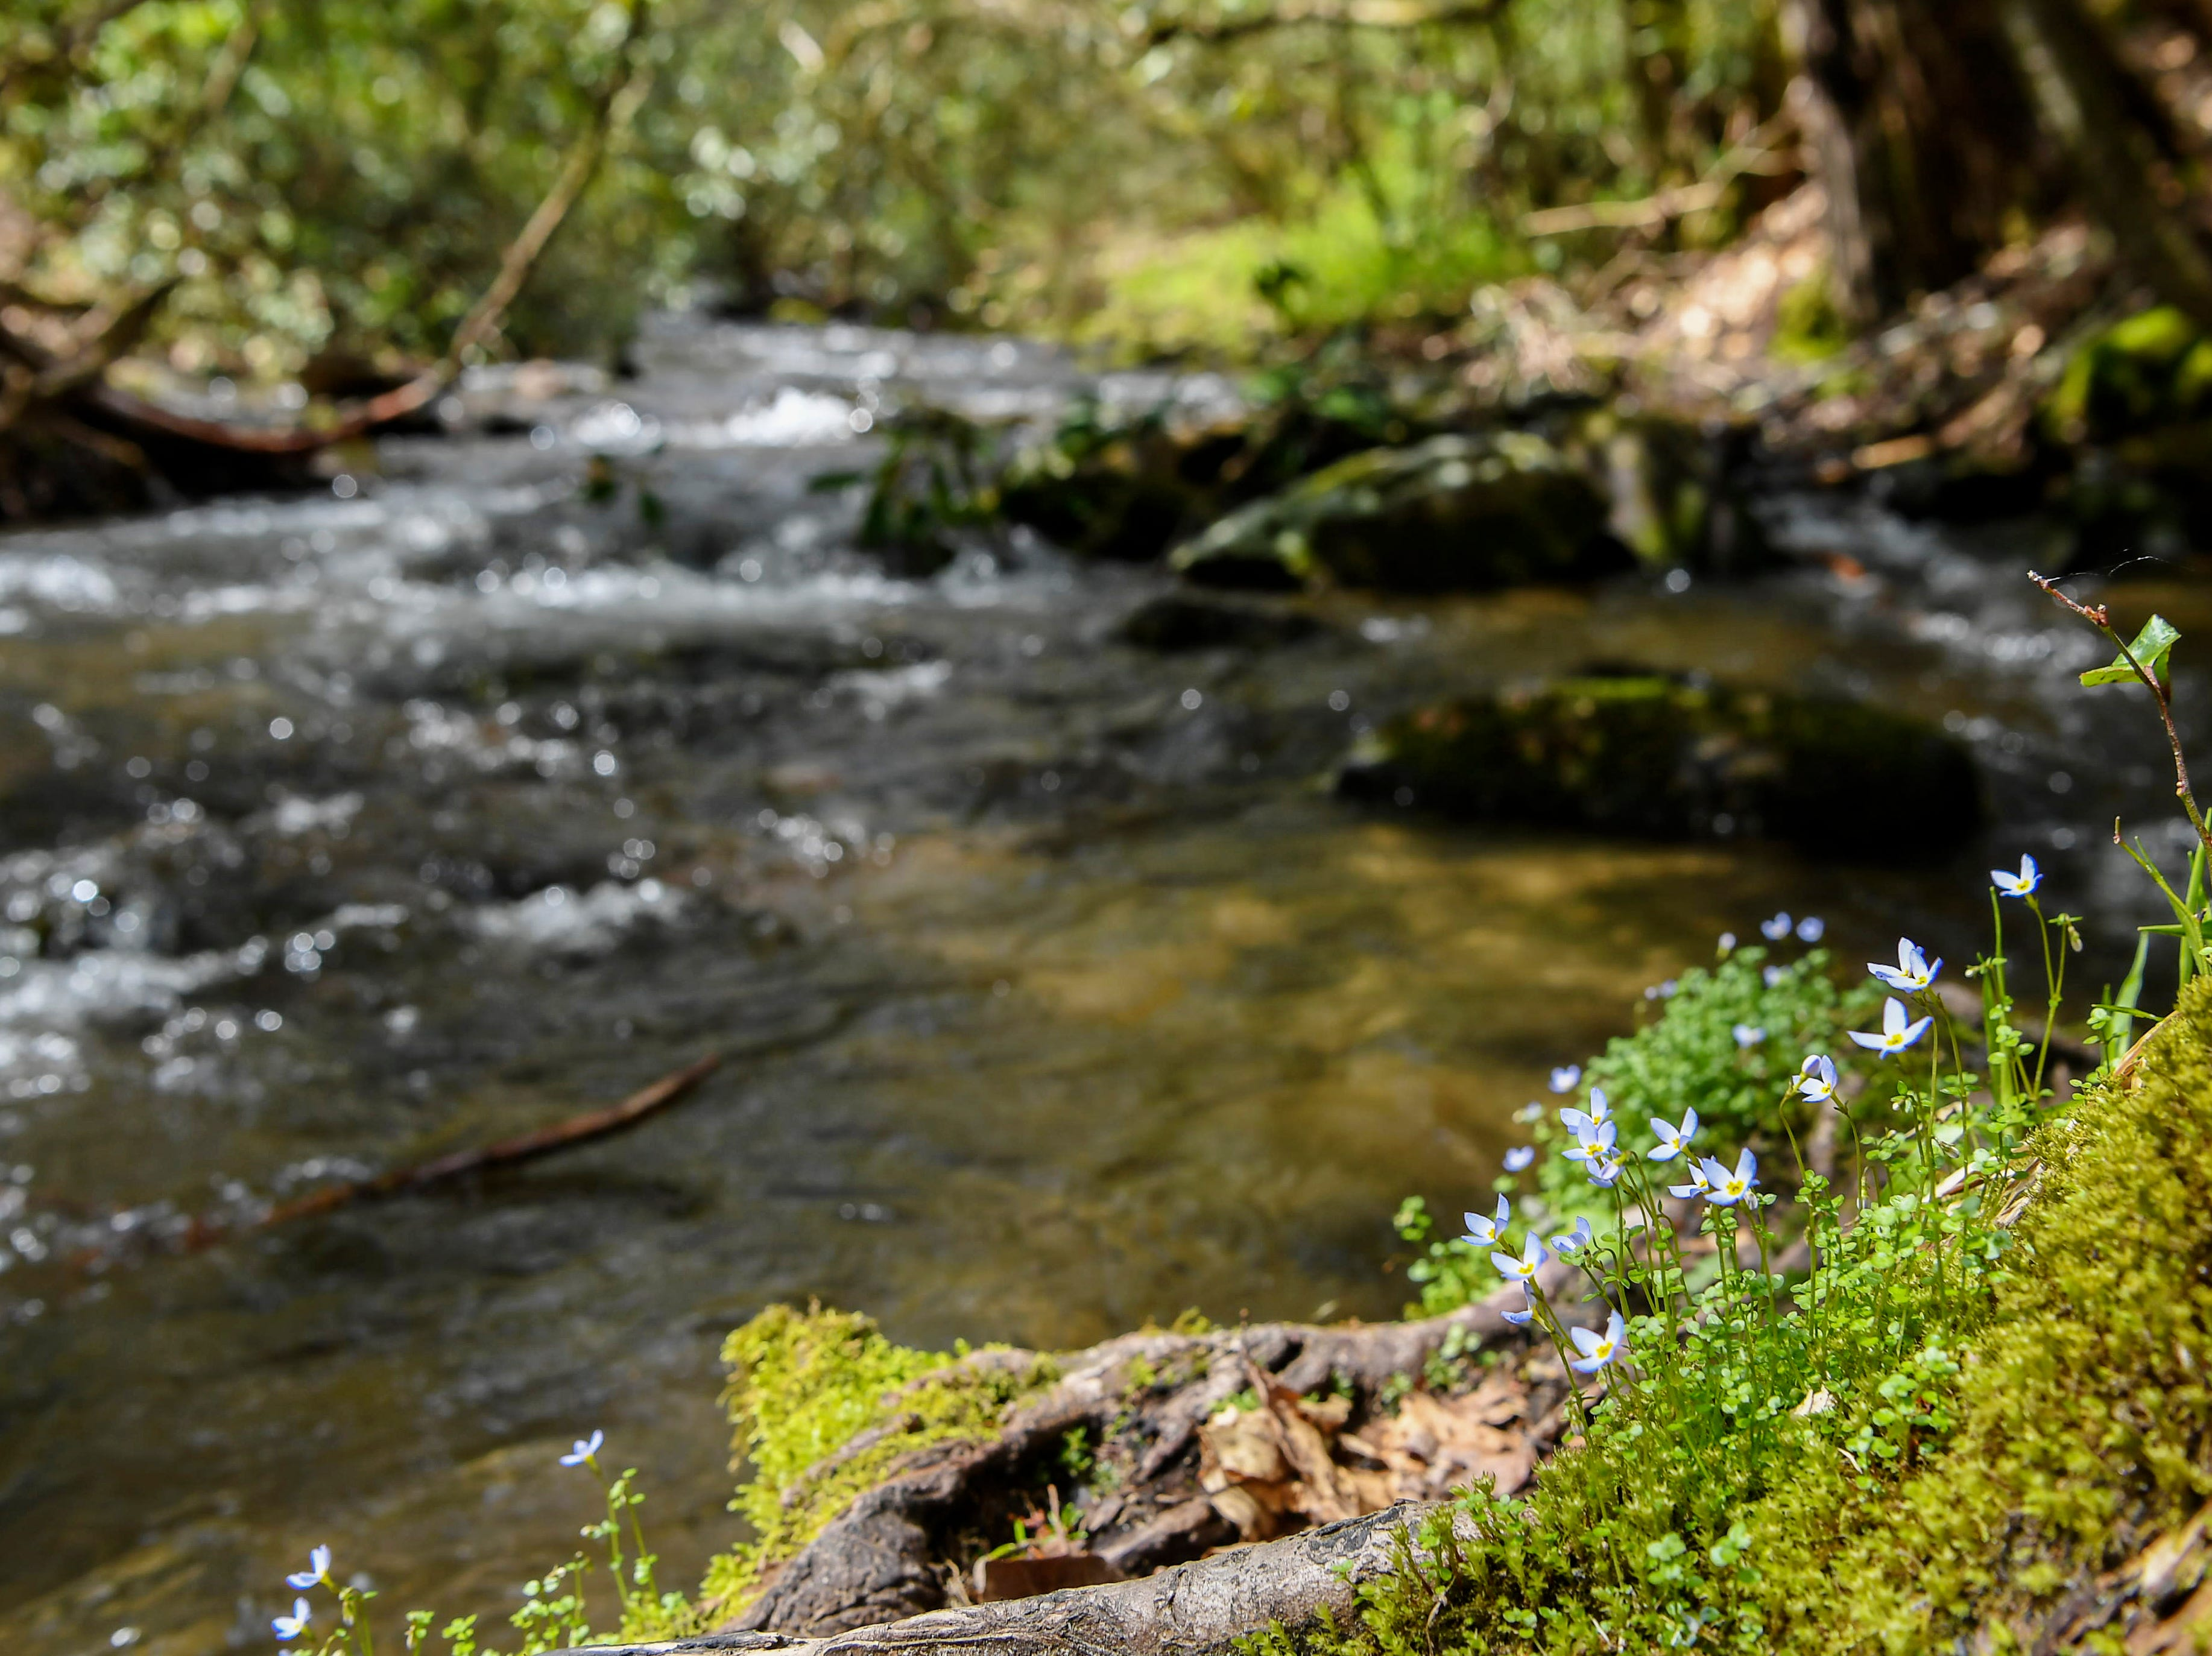 Wildflowers bloom next to a river along the trail to Mingus Mill in Great Smoky Mountains National Park April 11, 2019.